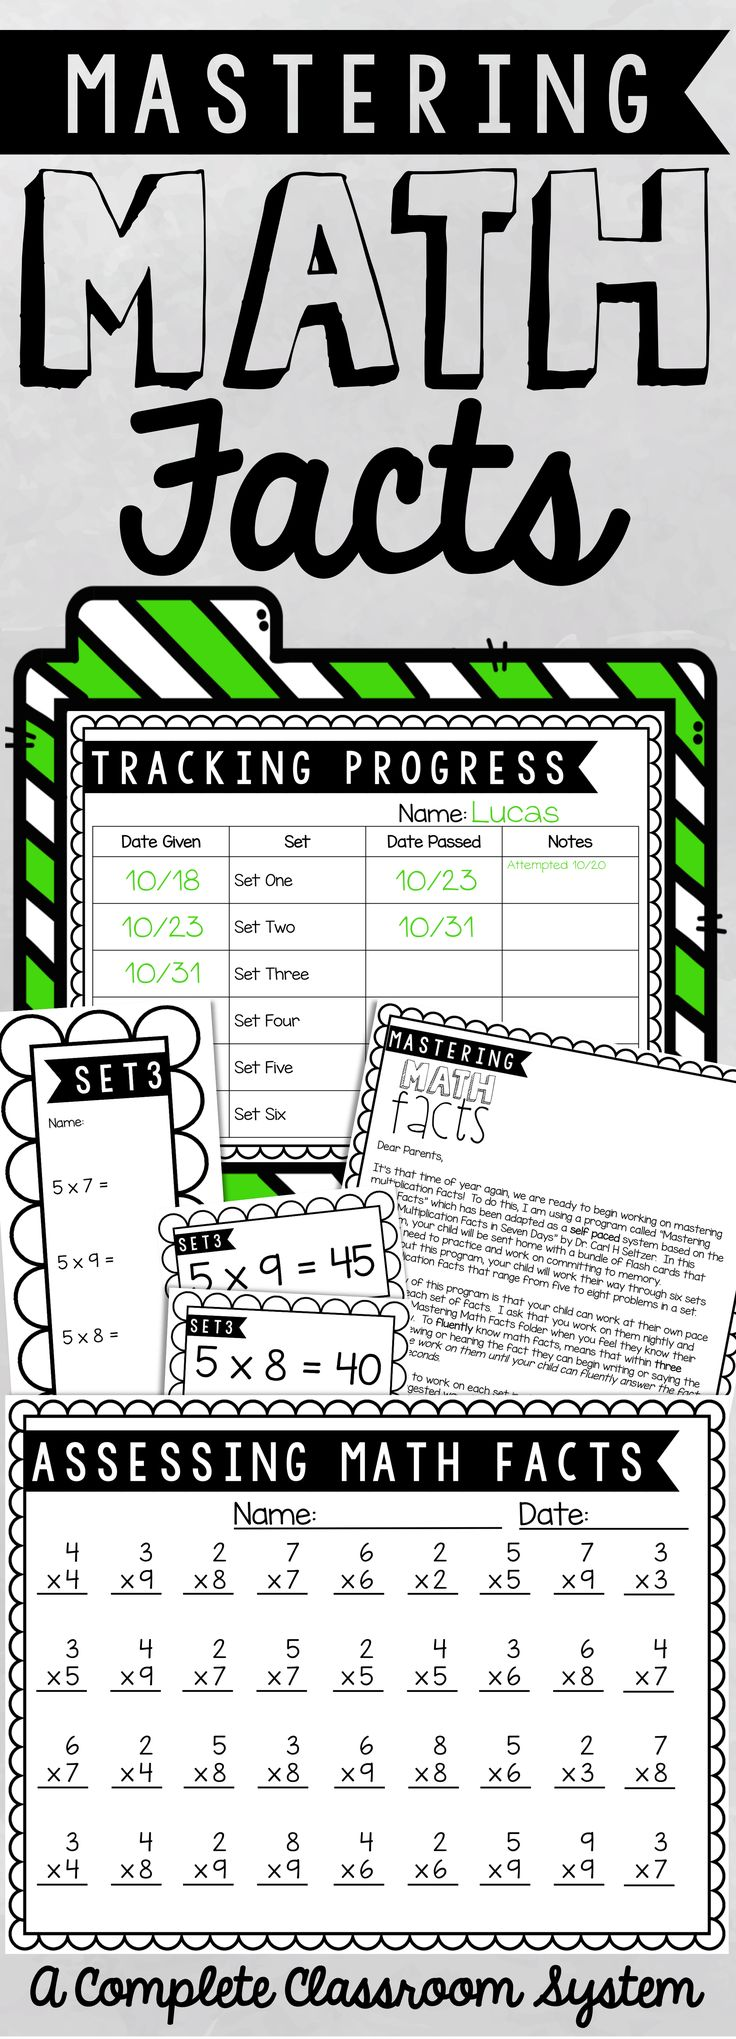 Do your students need help with multiplication math fact fluency? This program includes timed assessments, progress monitoring, flash cards, and parent letters for implementing a complete system for student mastery.